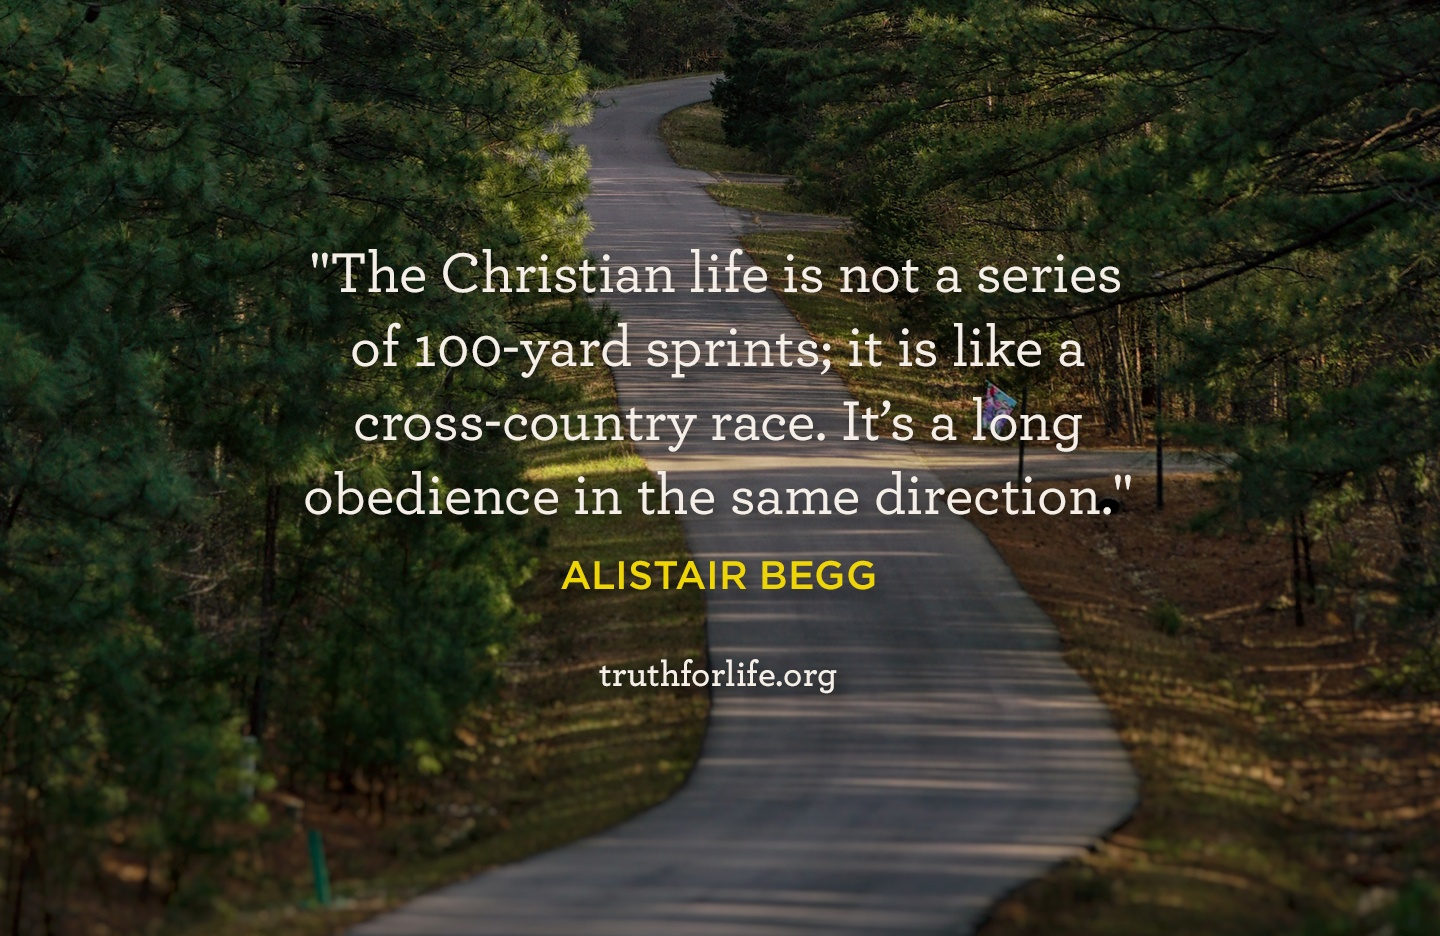 The Christian life is not a series of 100-yard sprints; it is like a cross-country race. It's a long obedience in the same direction. - Alistair Begg